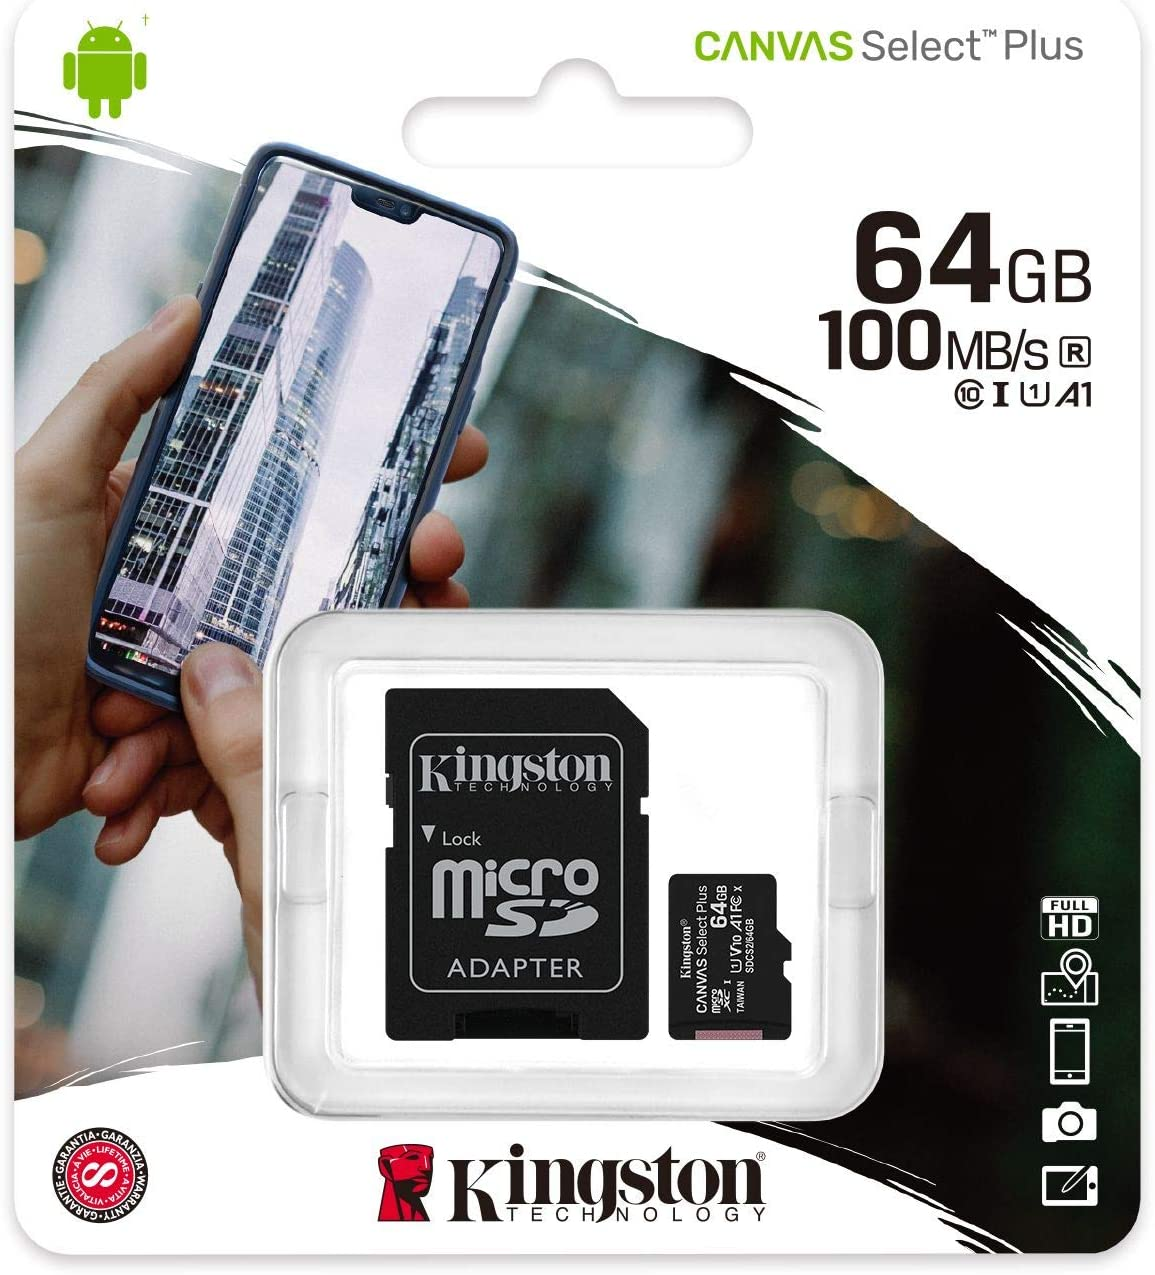 100MBs Works with Kingston Kingston 64GB Asus FE170CG MicroSDXC Canvas Select Plus Card Verified by SanFlash.